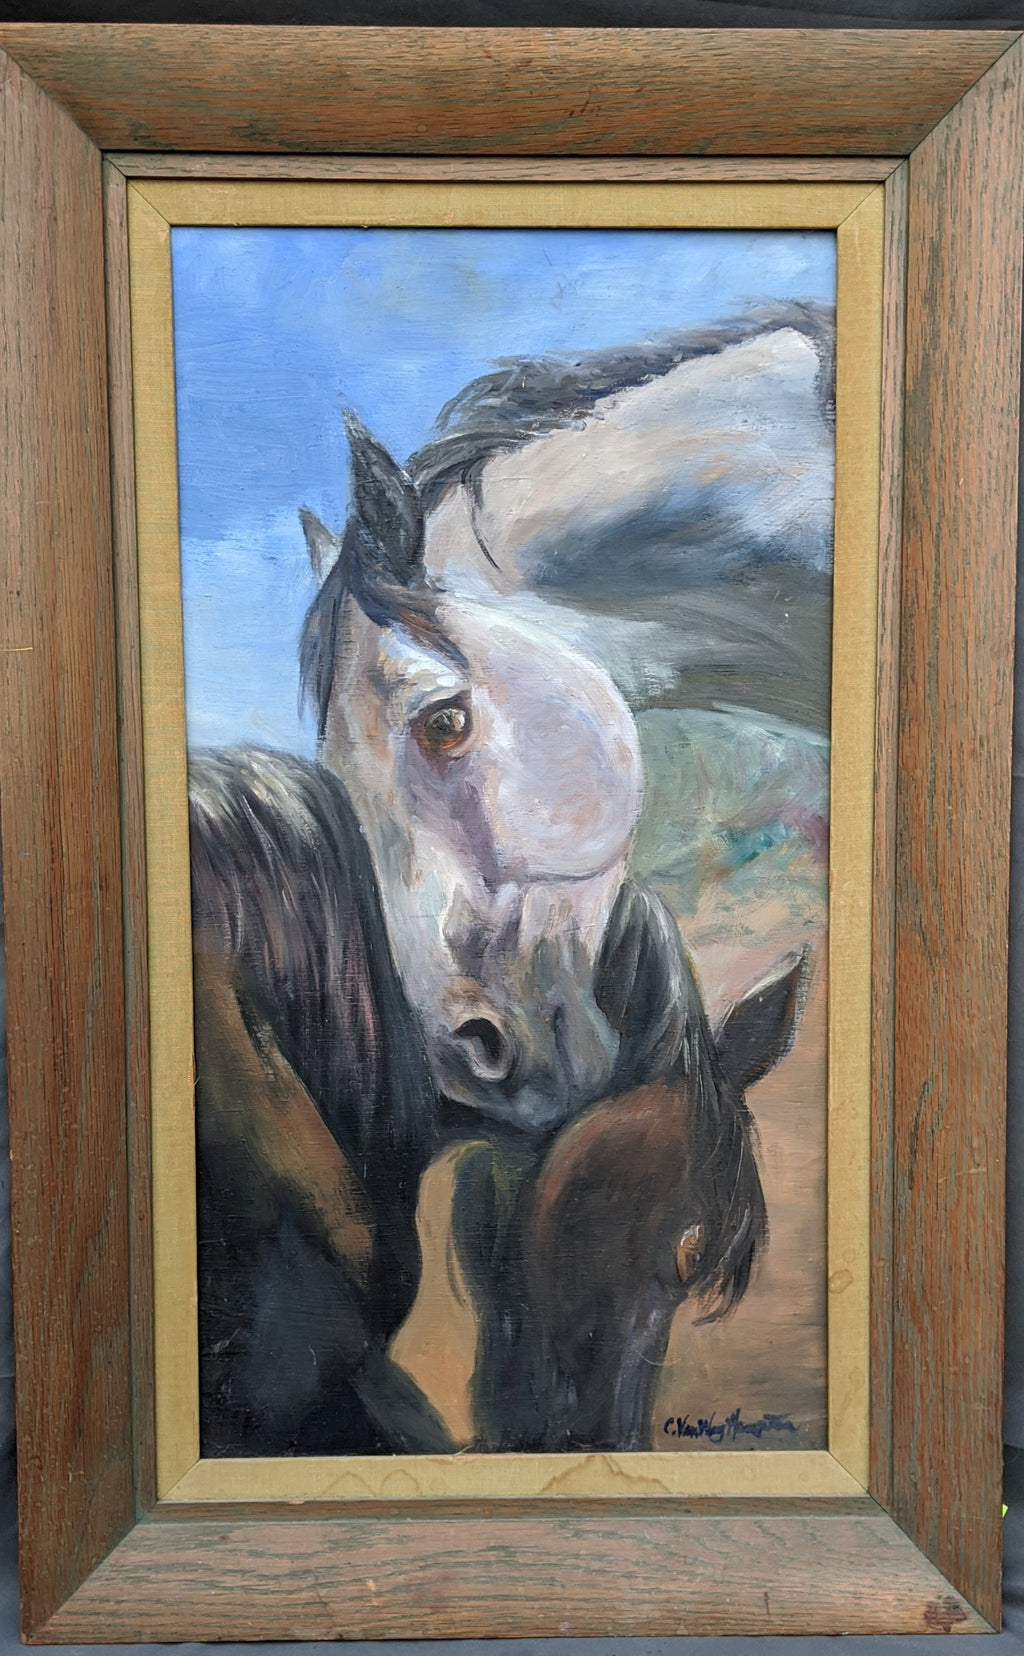 VERTICAL OIL PAINTING OF HORSE BUDDIES BY CYNTHIA HAMPTON